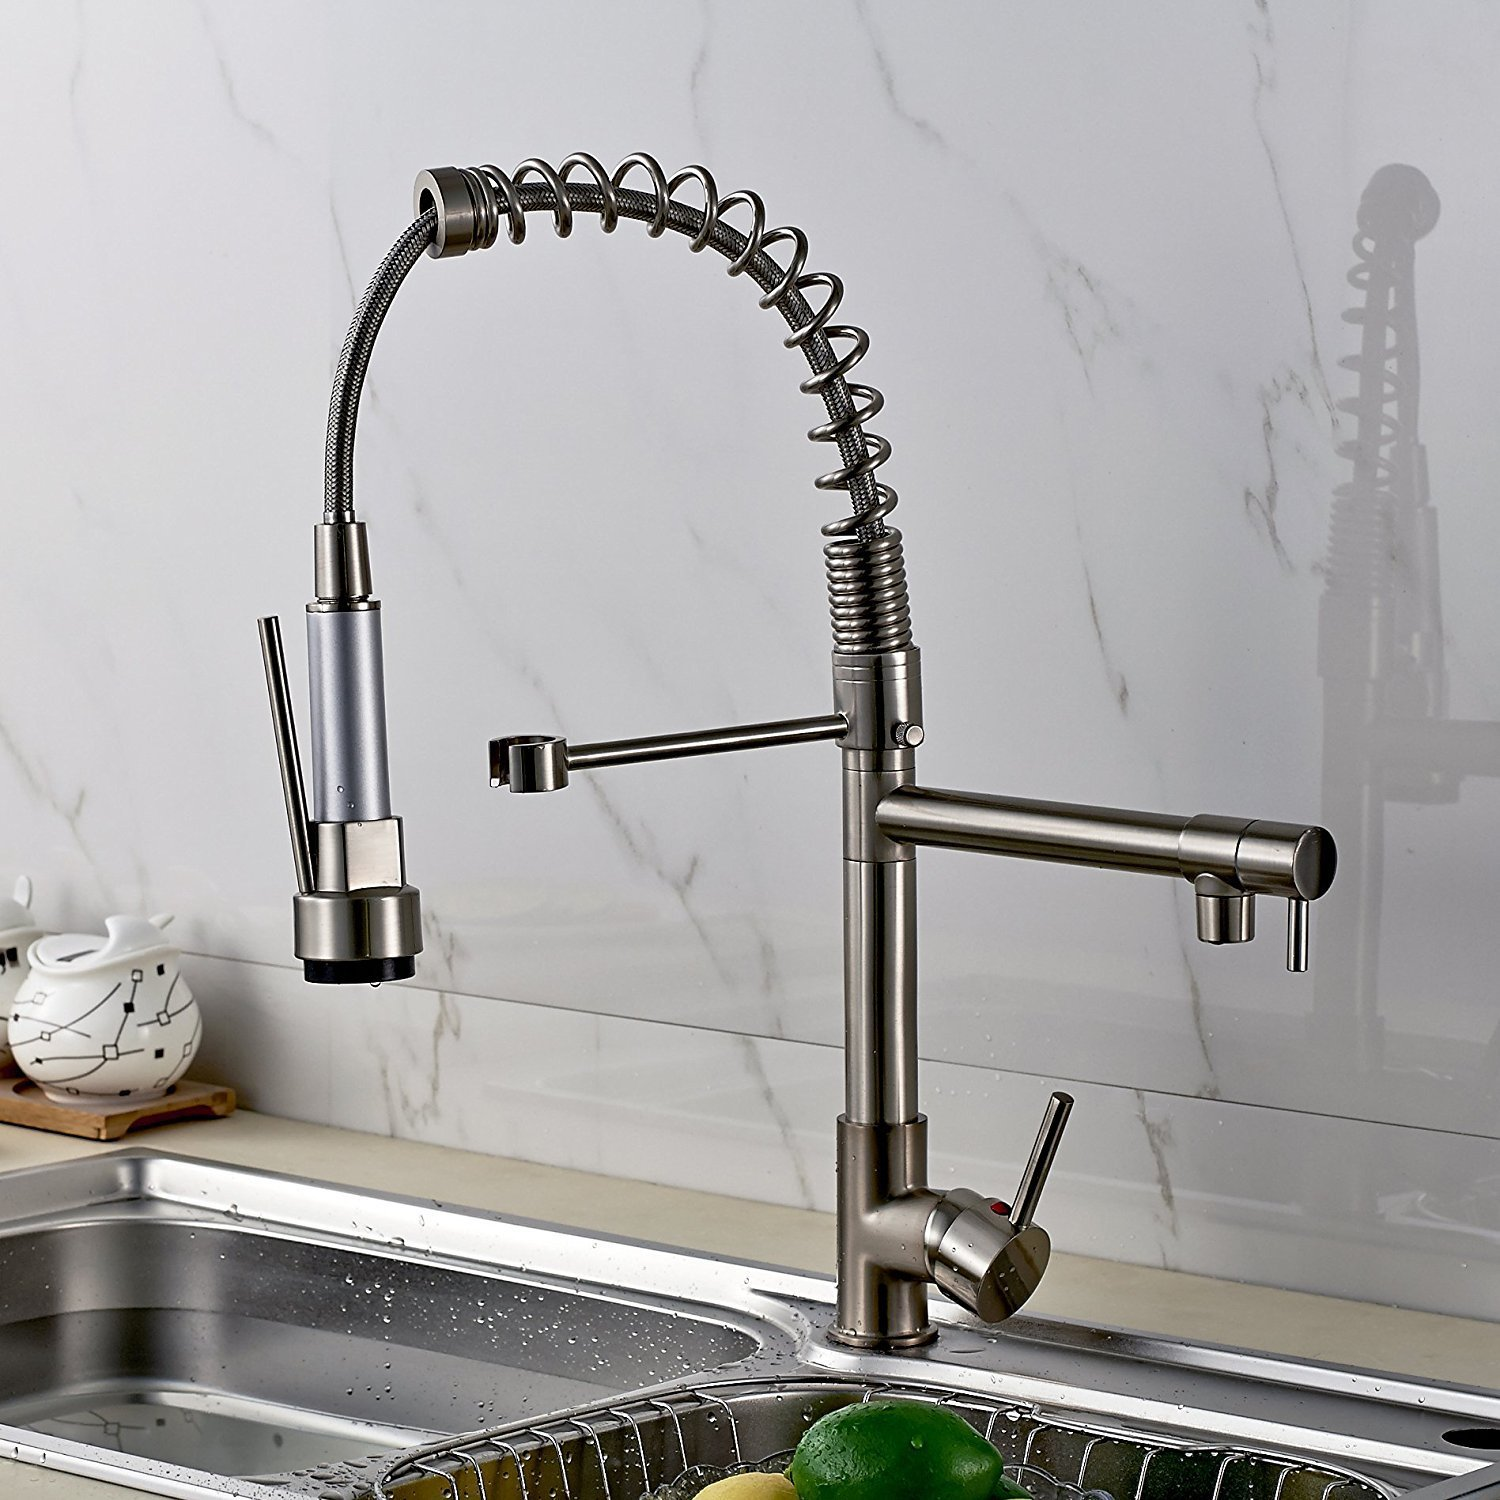 of like gorgeous a pi bridge uk linen well regular wilson faucet as plumbing look kitchen you velvet whole and if the envy fixture faucets brushed in one three barber nickel makes